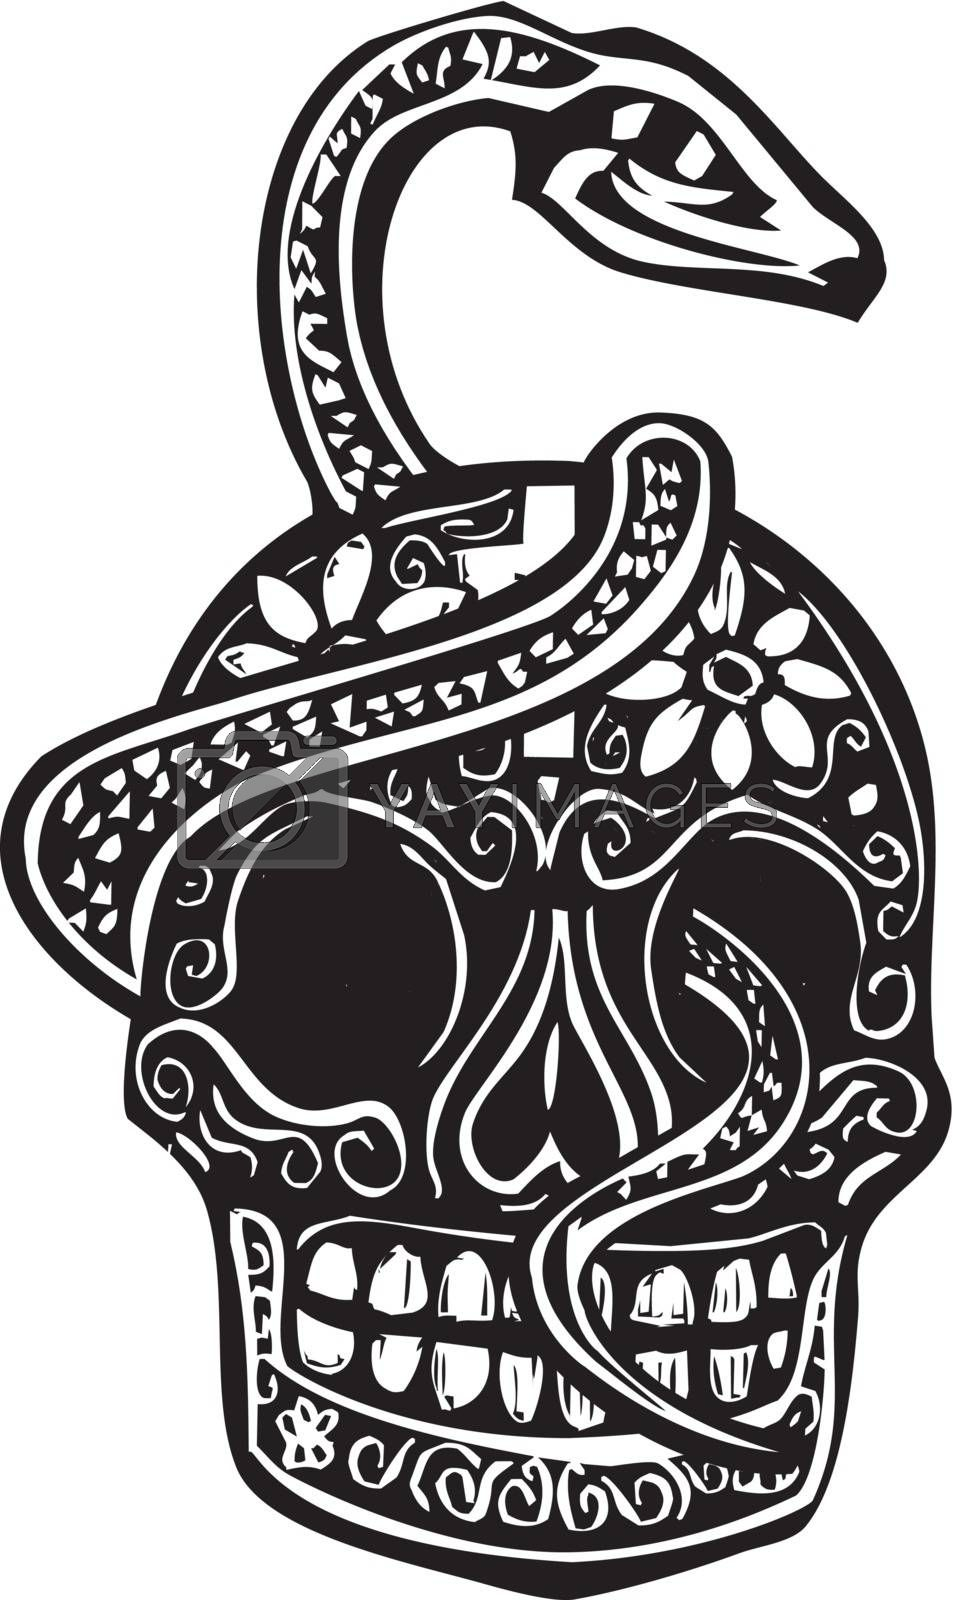 Woodcut style image of a day of the dead Skull wrapped in a serpent.